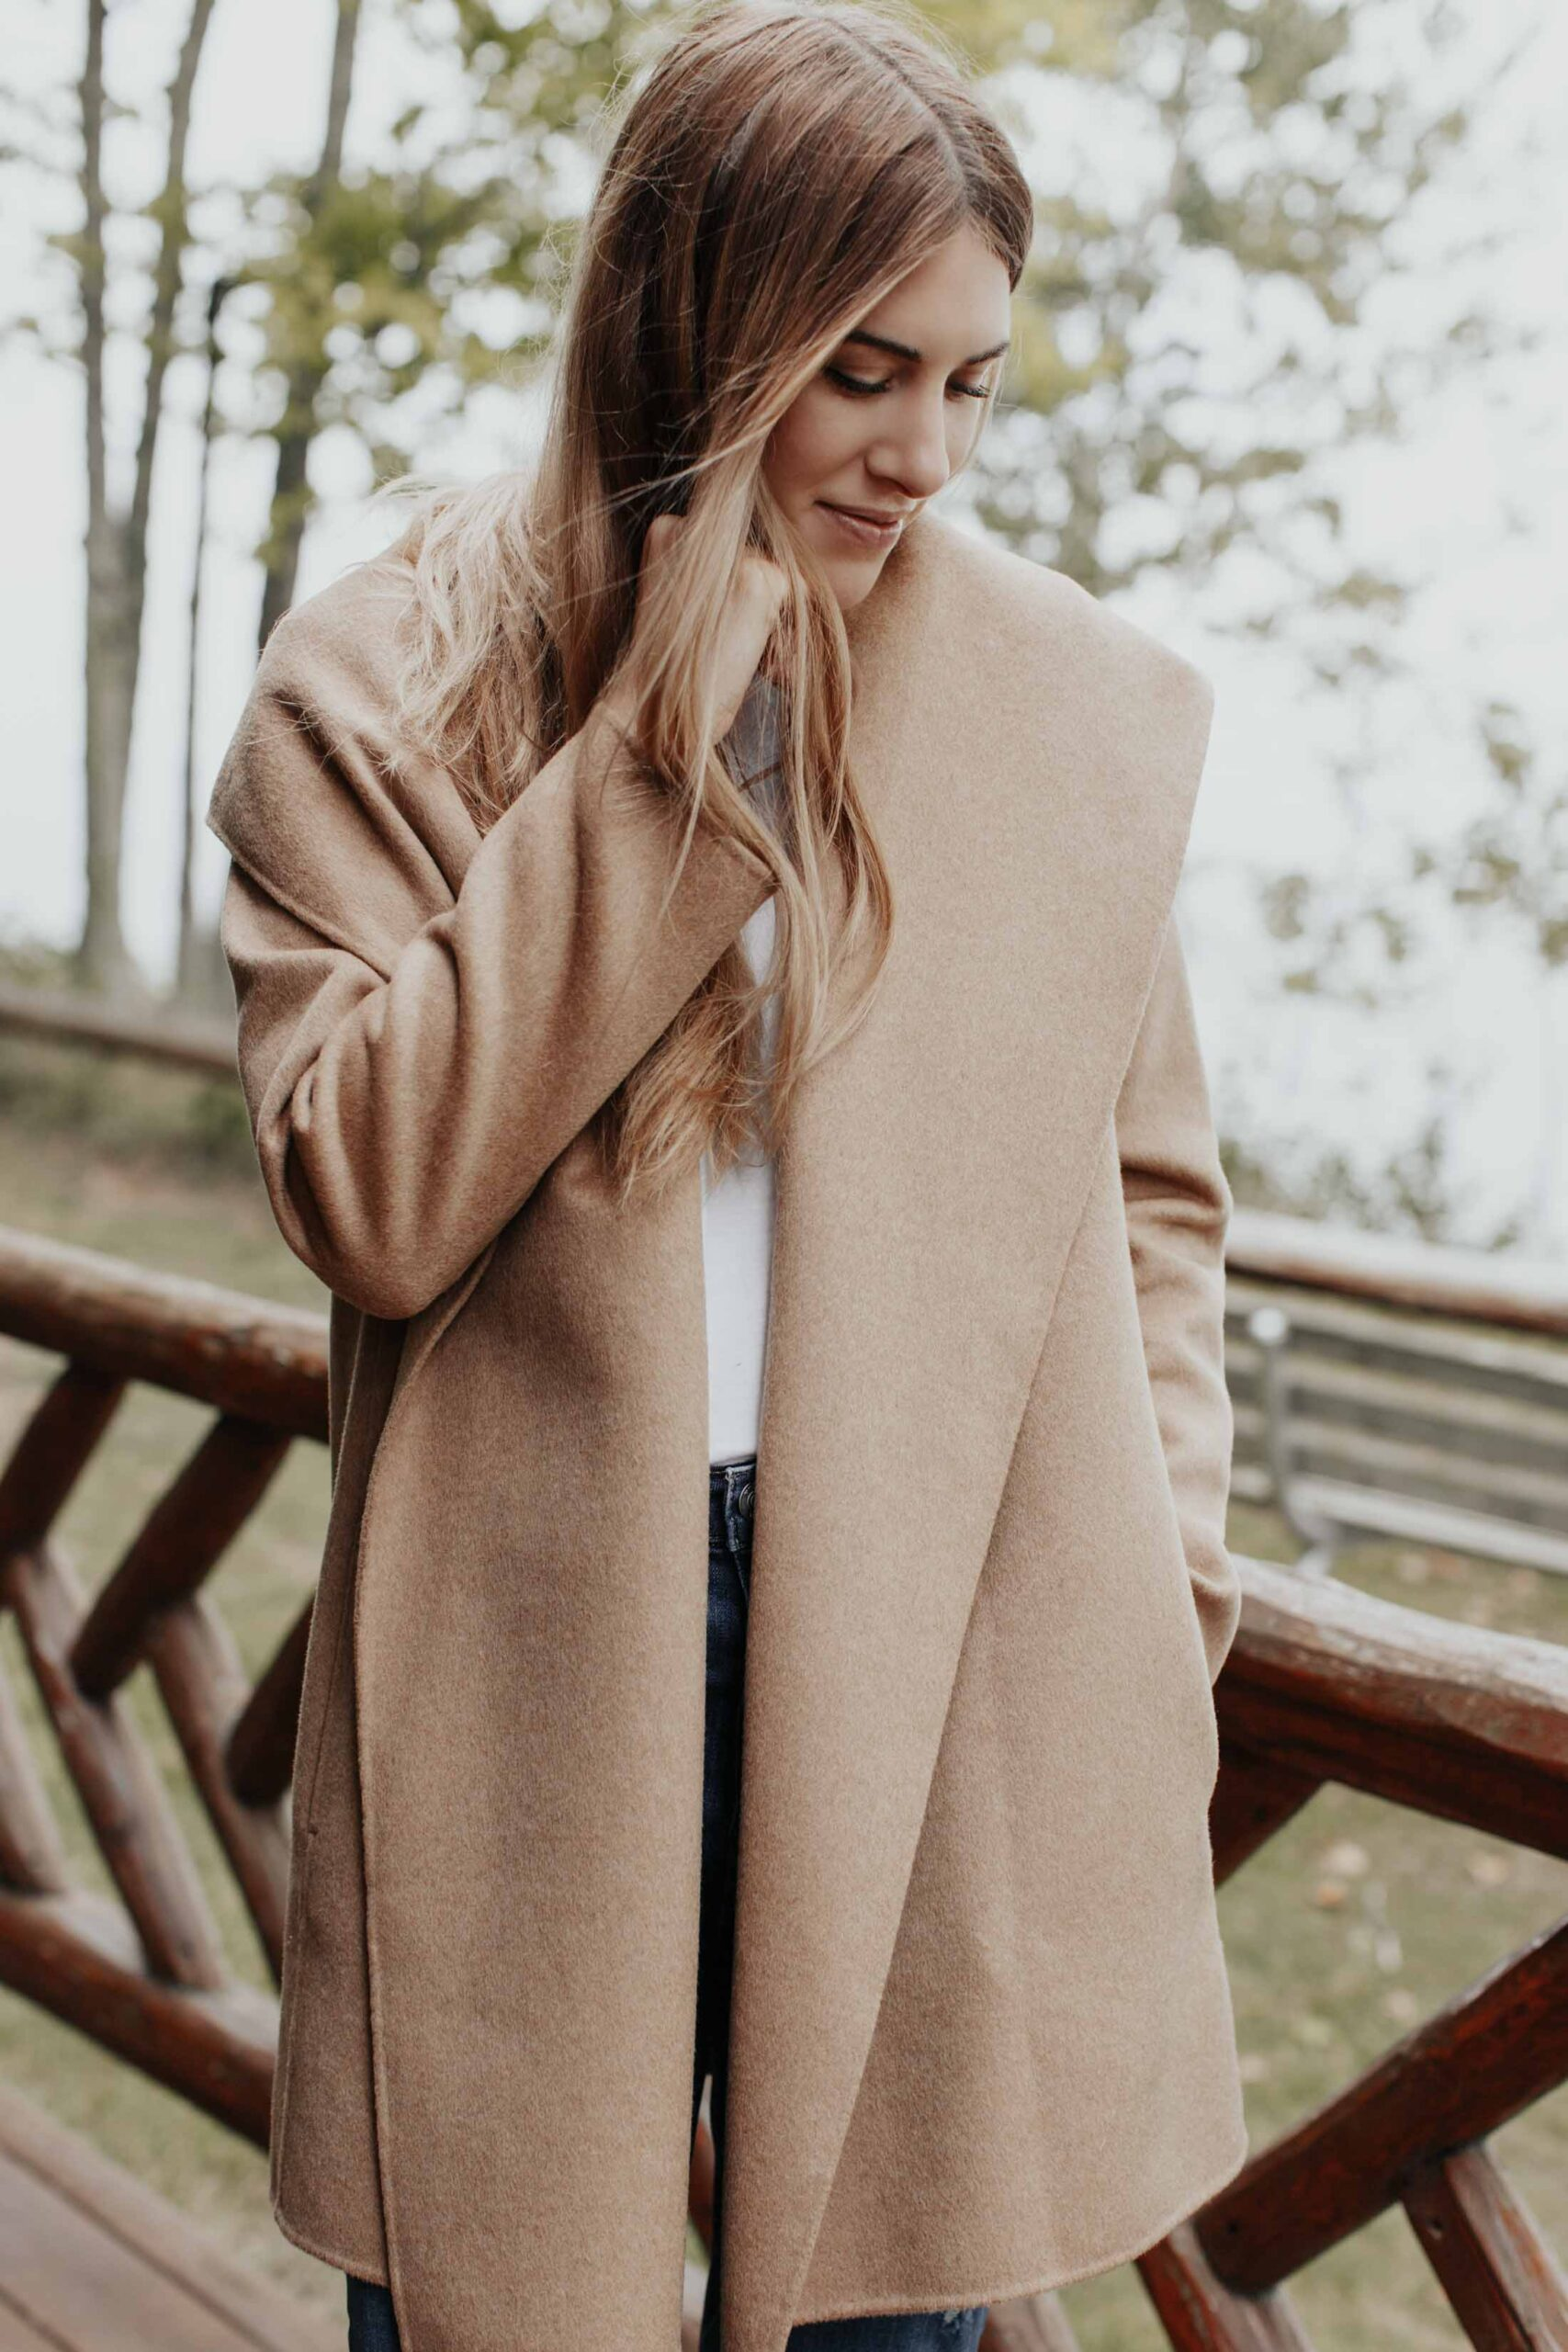 I'm talking about the lighter, drapey versions that can easily be thrown on & taken off. Coats like this gorgeous open-front hooded number from Vince.